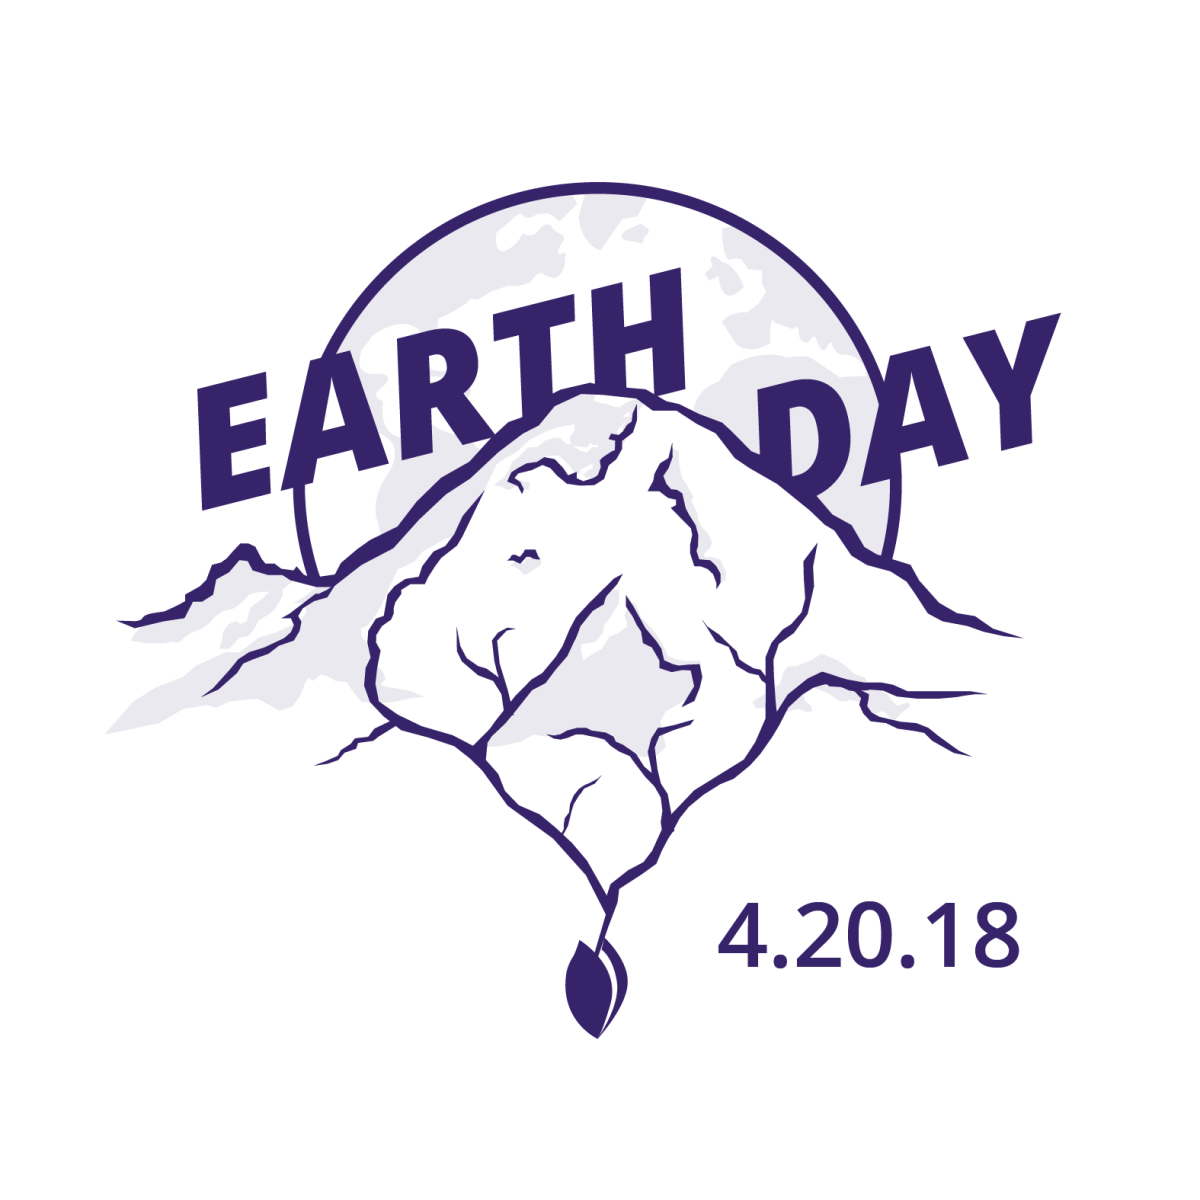 2018 Earth Day logo with date